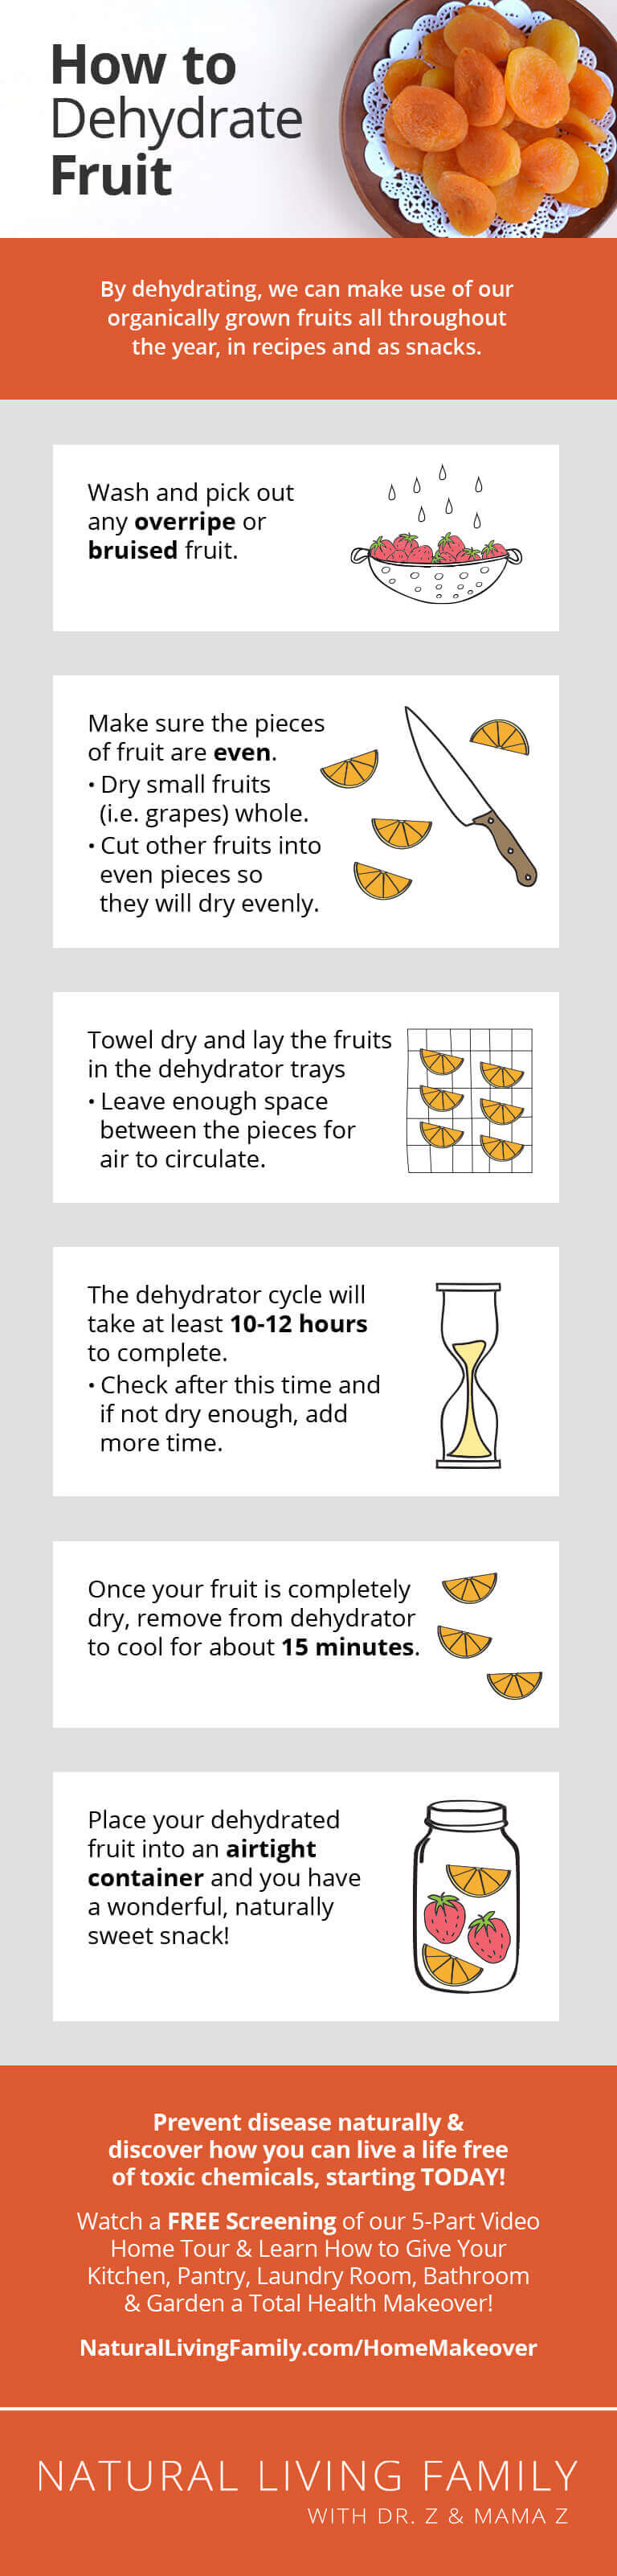 Dehydrator Guide: How to Dehydrate Fruit